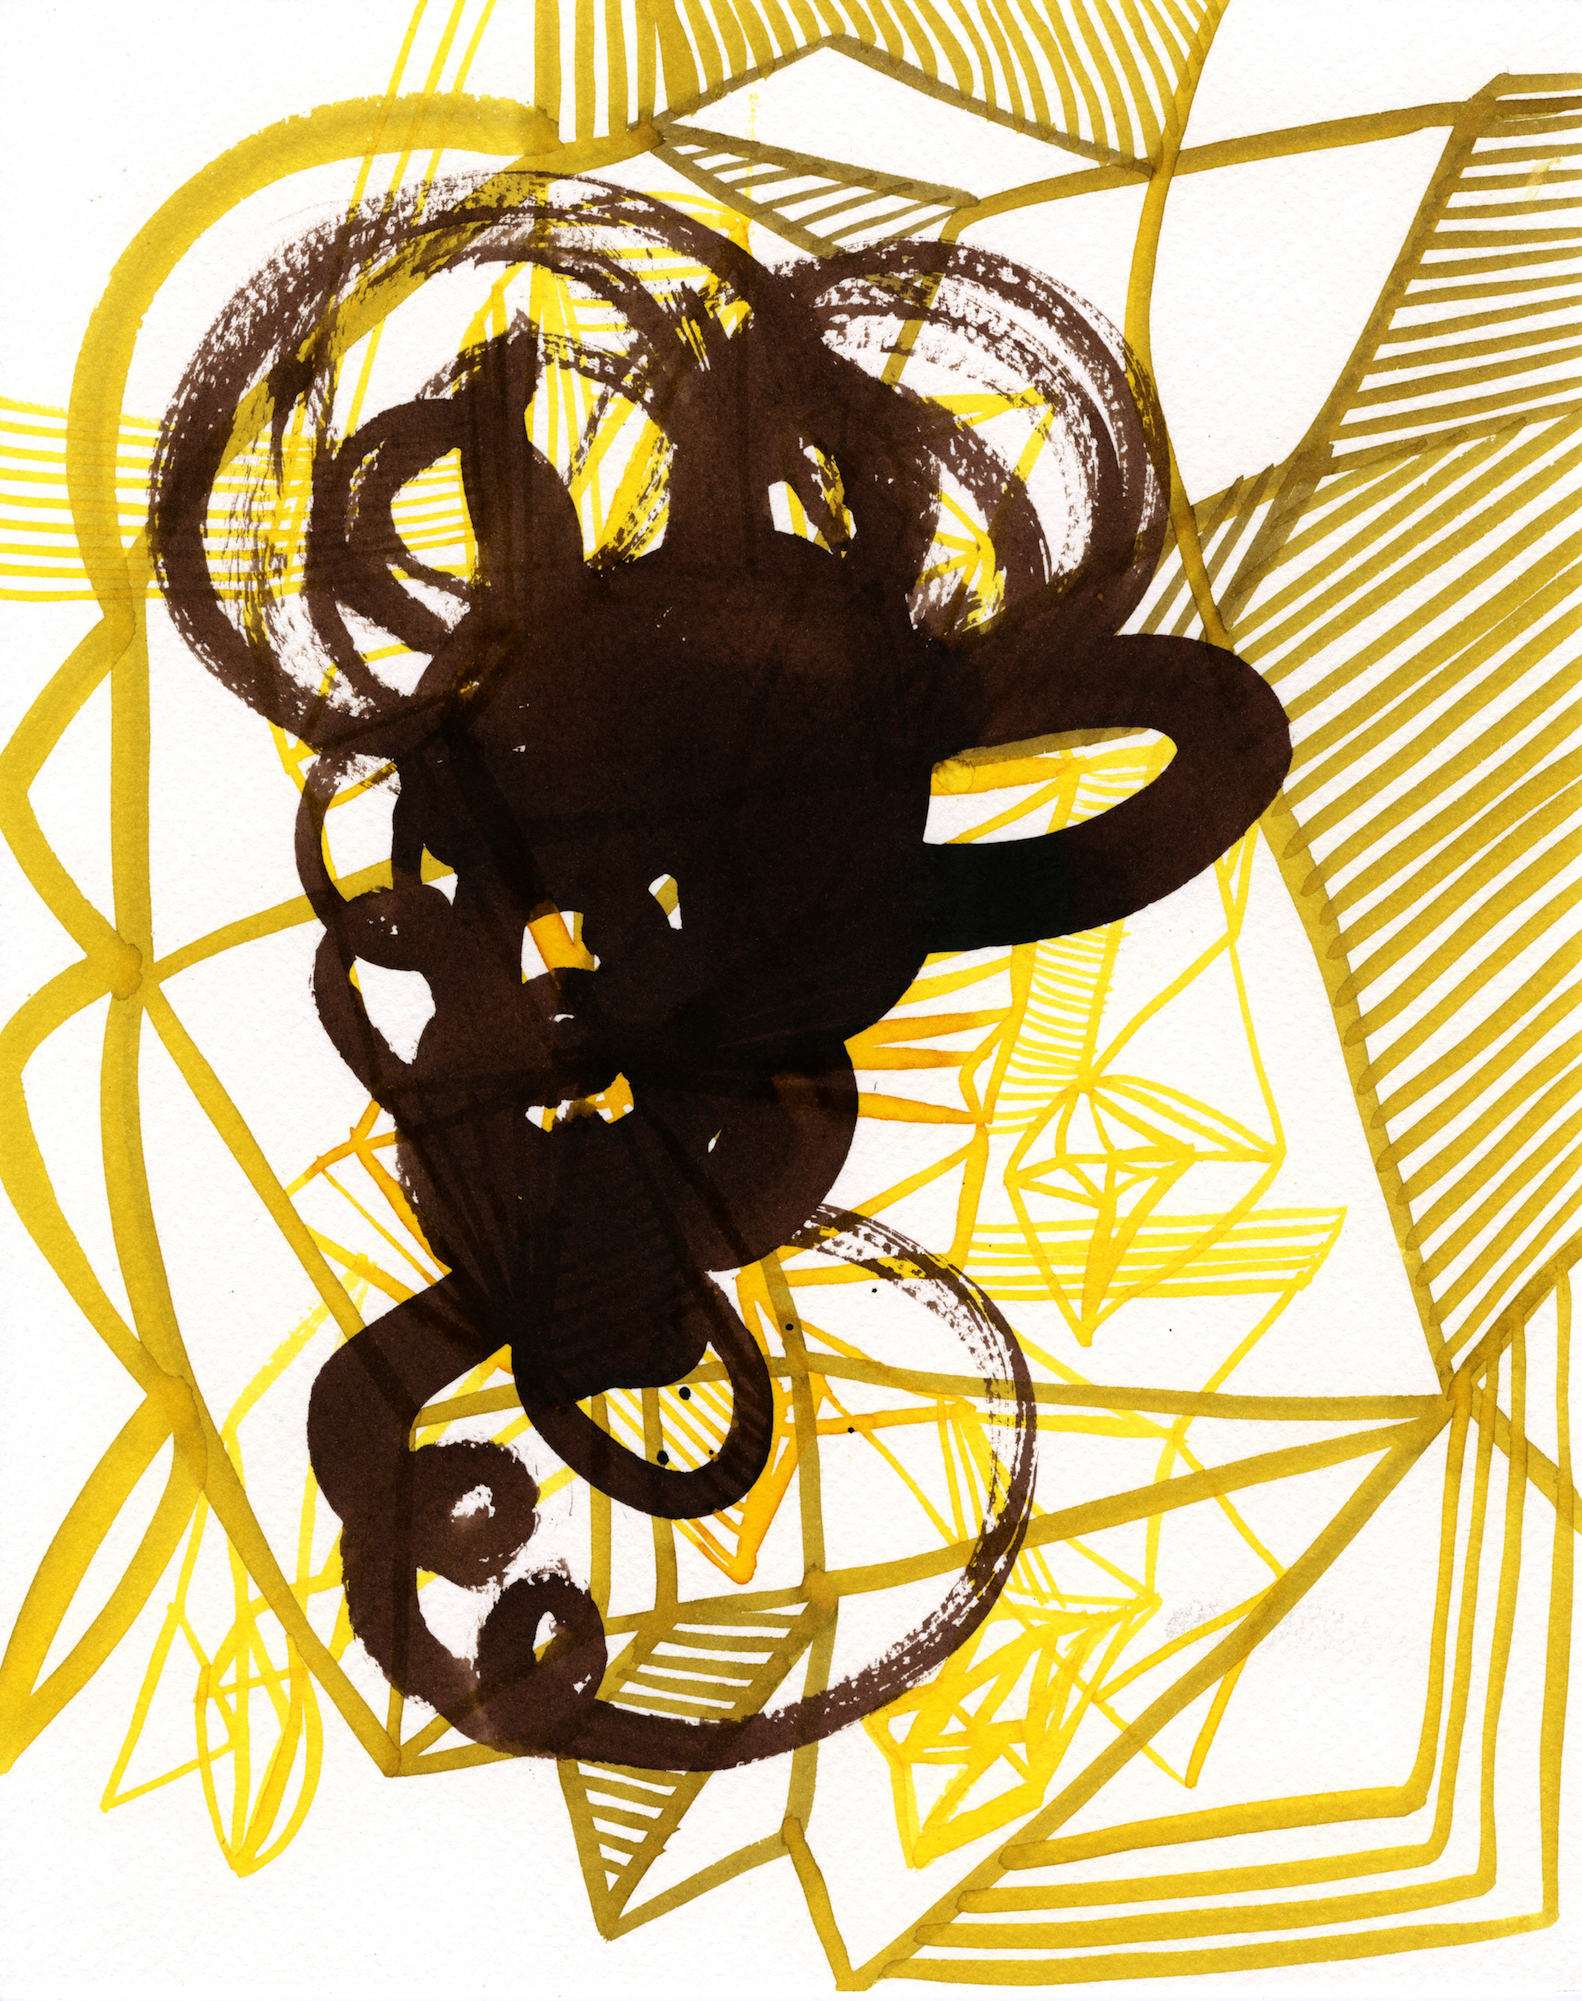 When Mustard meets Soy Sauce, 2014 ink on paper 9x7 inches